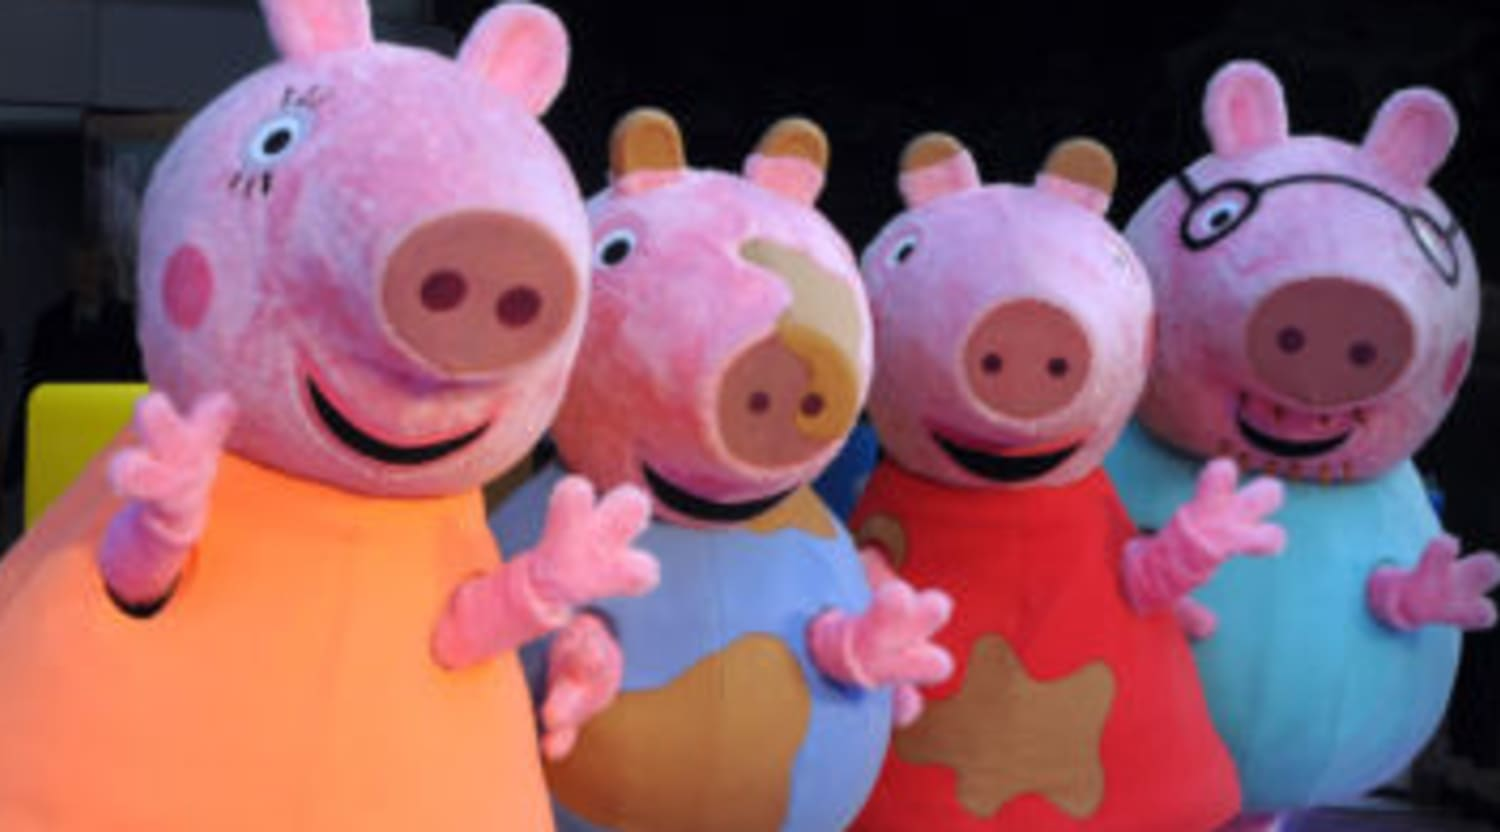 Peppa Pig Live! Tickets - Peppa Pig Live! Tickets - StubHub